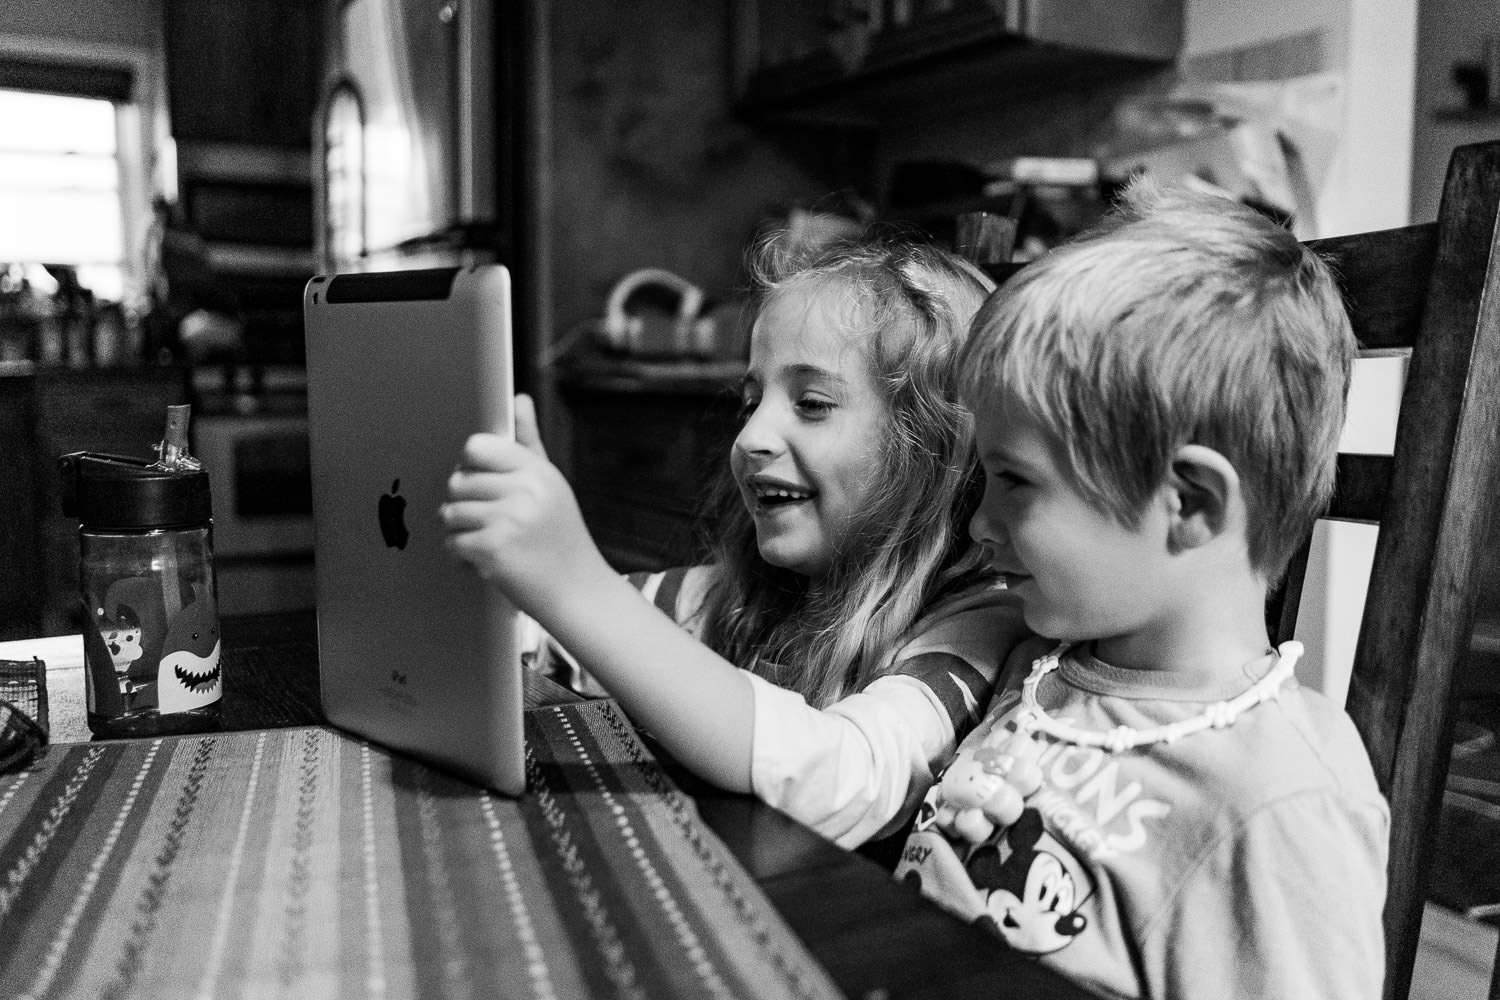 Two siblings play with a tablet at the kitchen table.